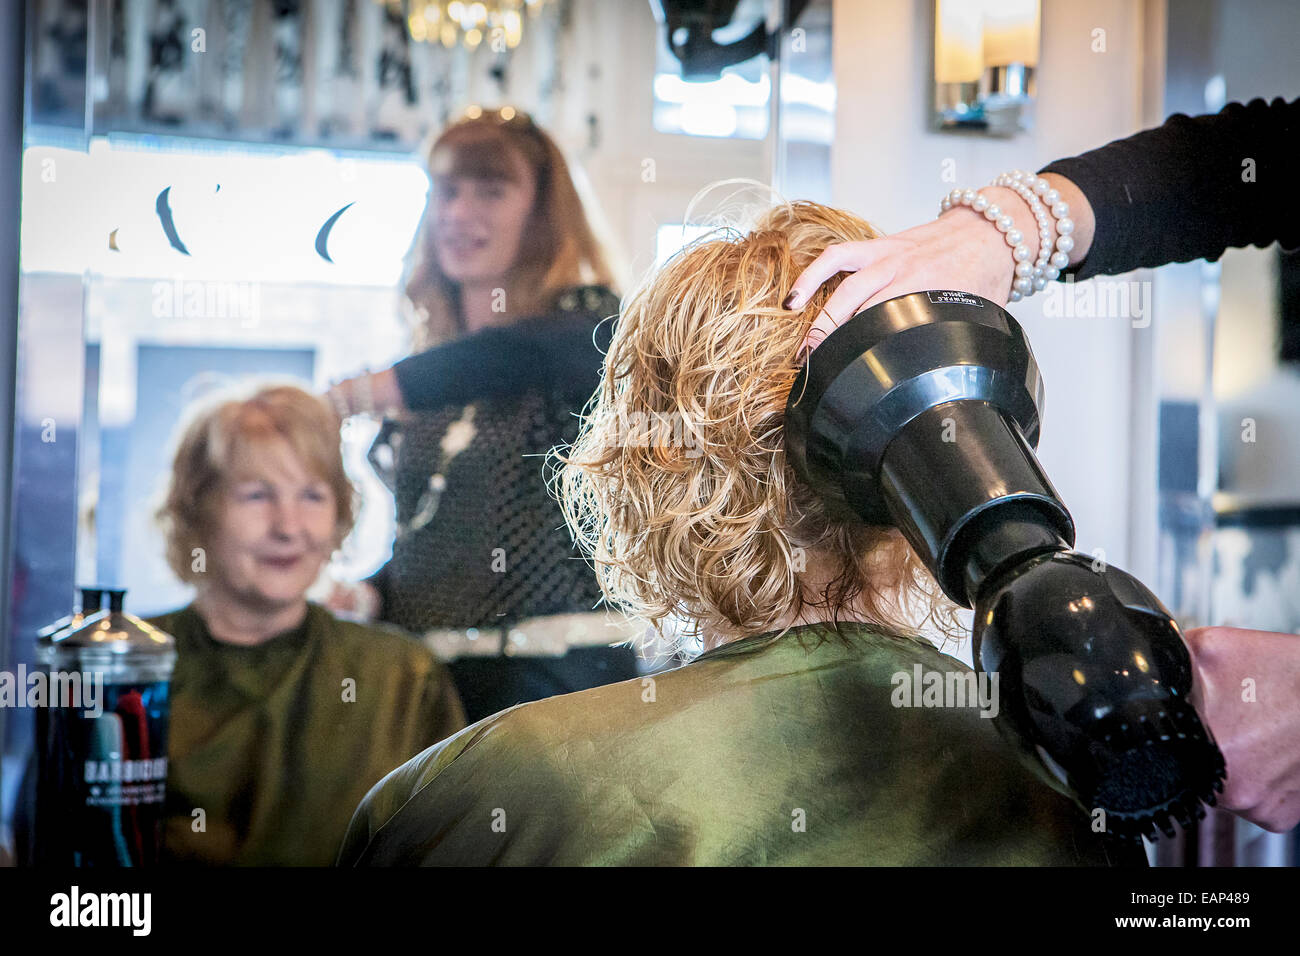 Reflection of hairdresser scrunching a blond lady's hair Stock Photo